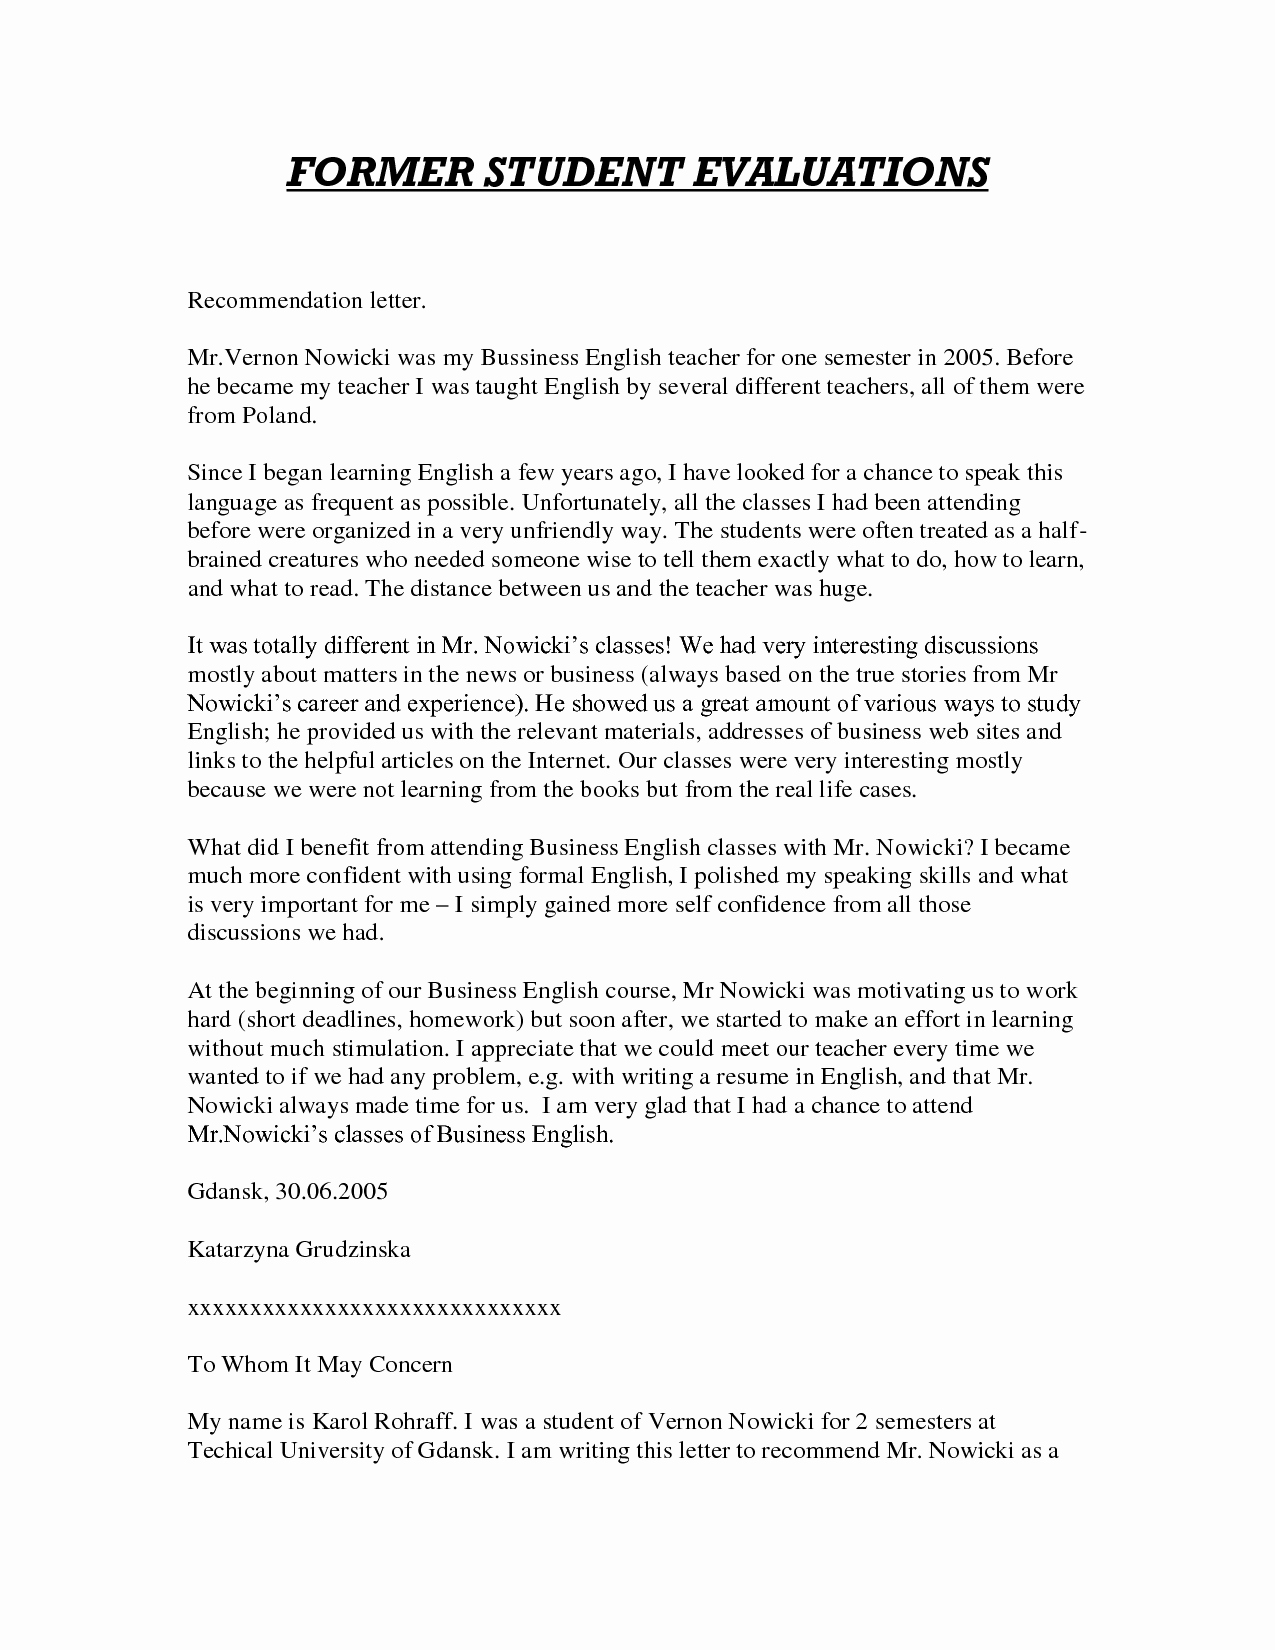 Sample Reference Letters for Teachers Inspirational Sample Letter Of Re Mendation for Teacher